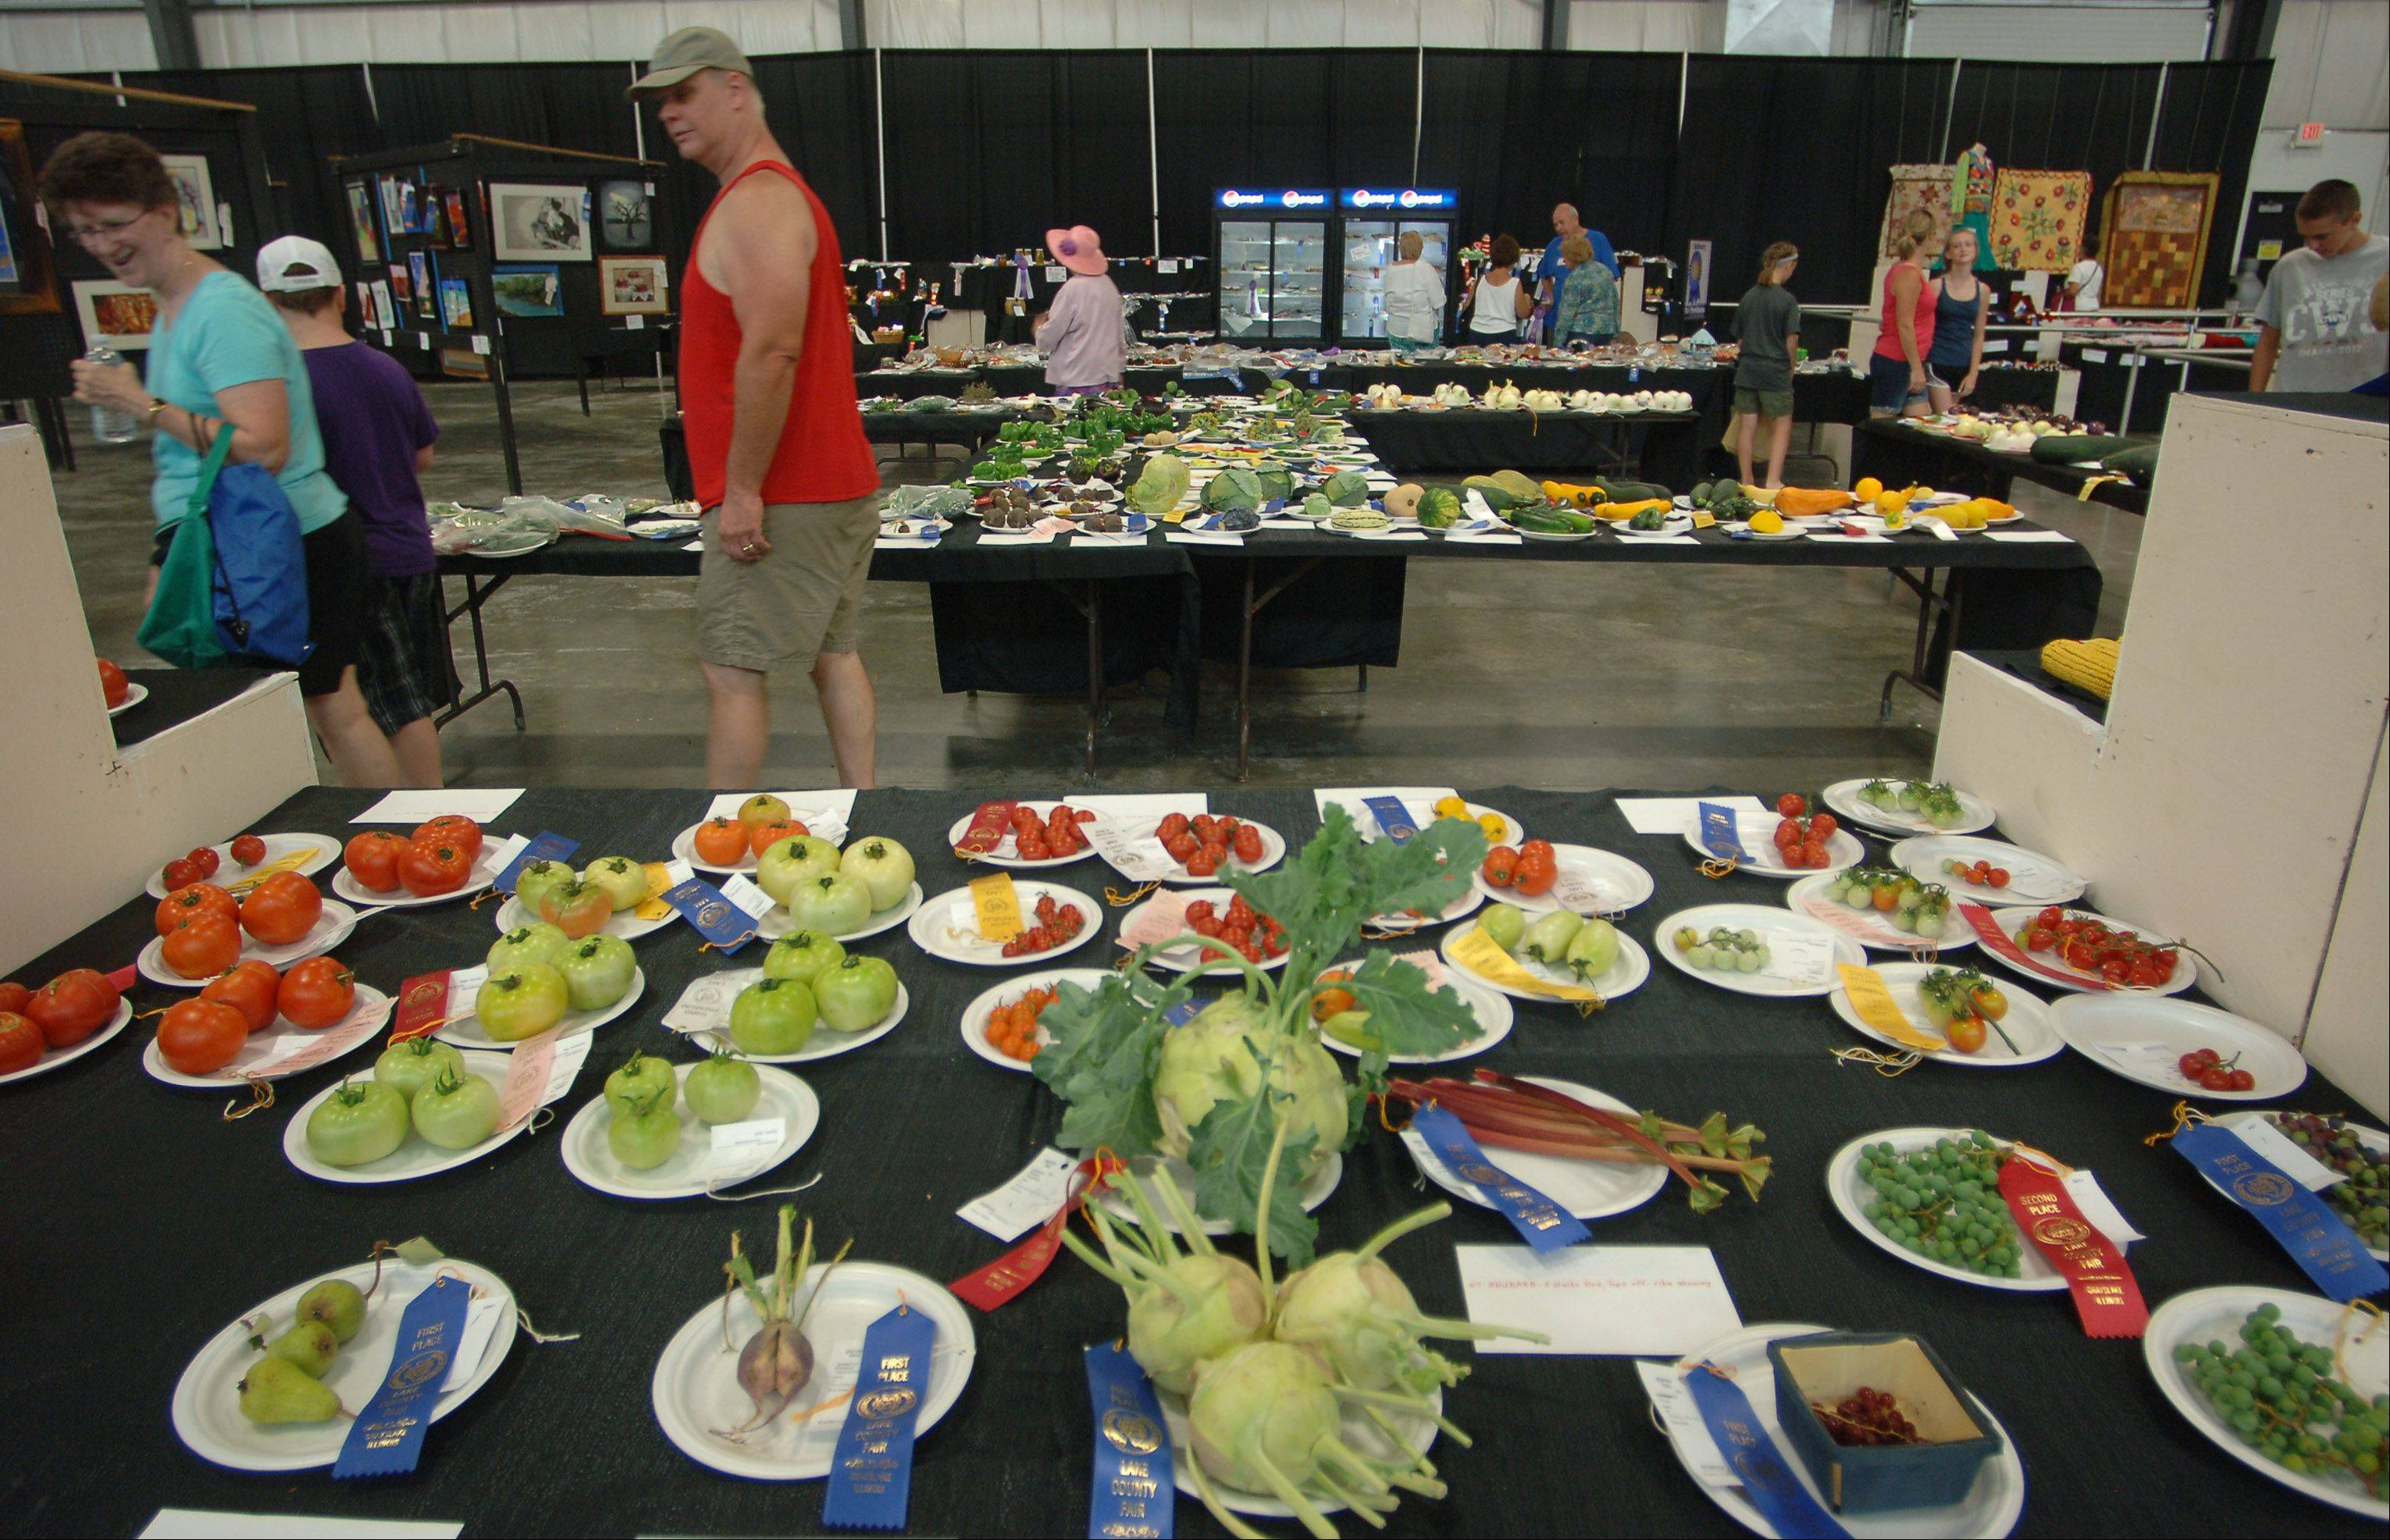 Fairgoers get a glimpse of prize-winning vegetables at the Lake County Fair in Grayslake.